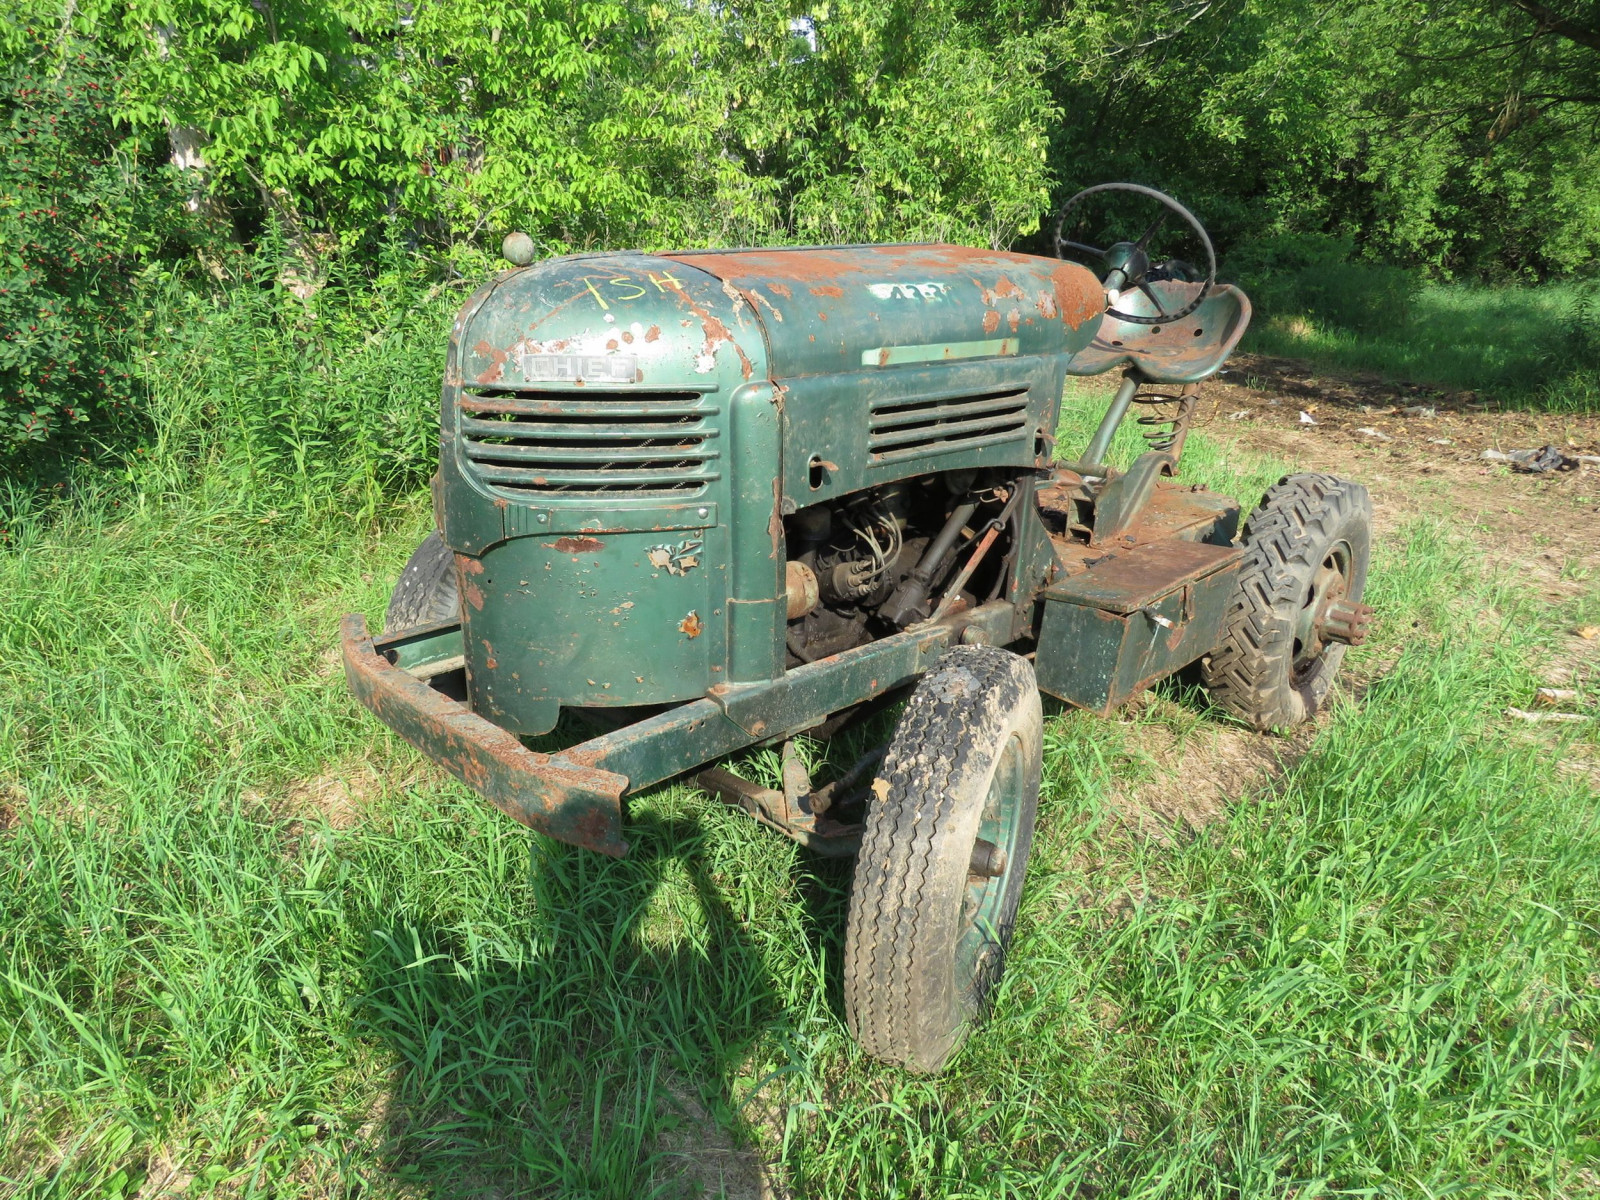 Worthington Mower Chief Lawn Tractor - Image 1